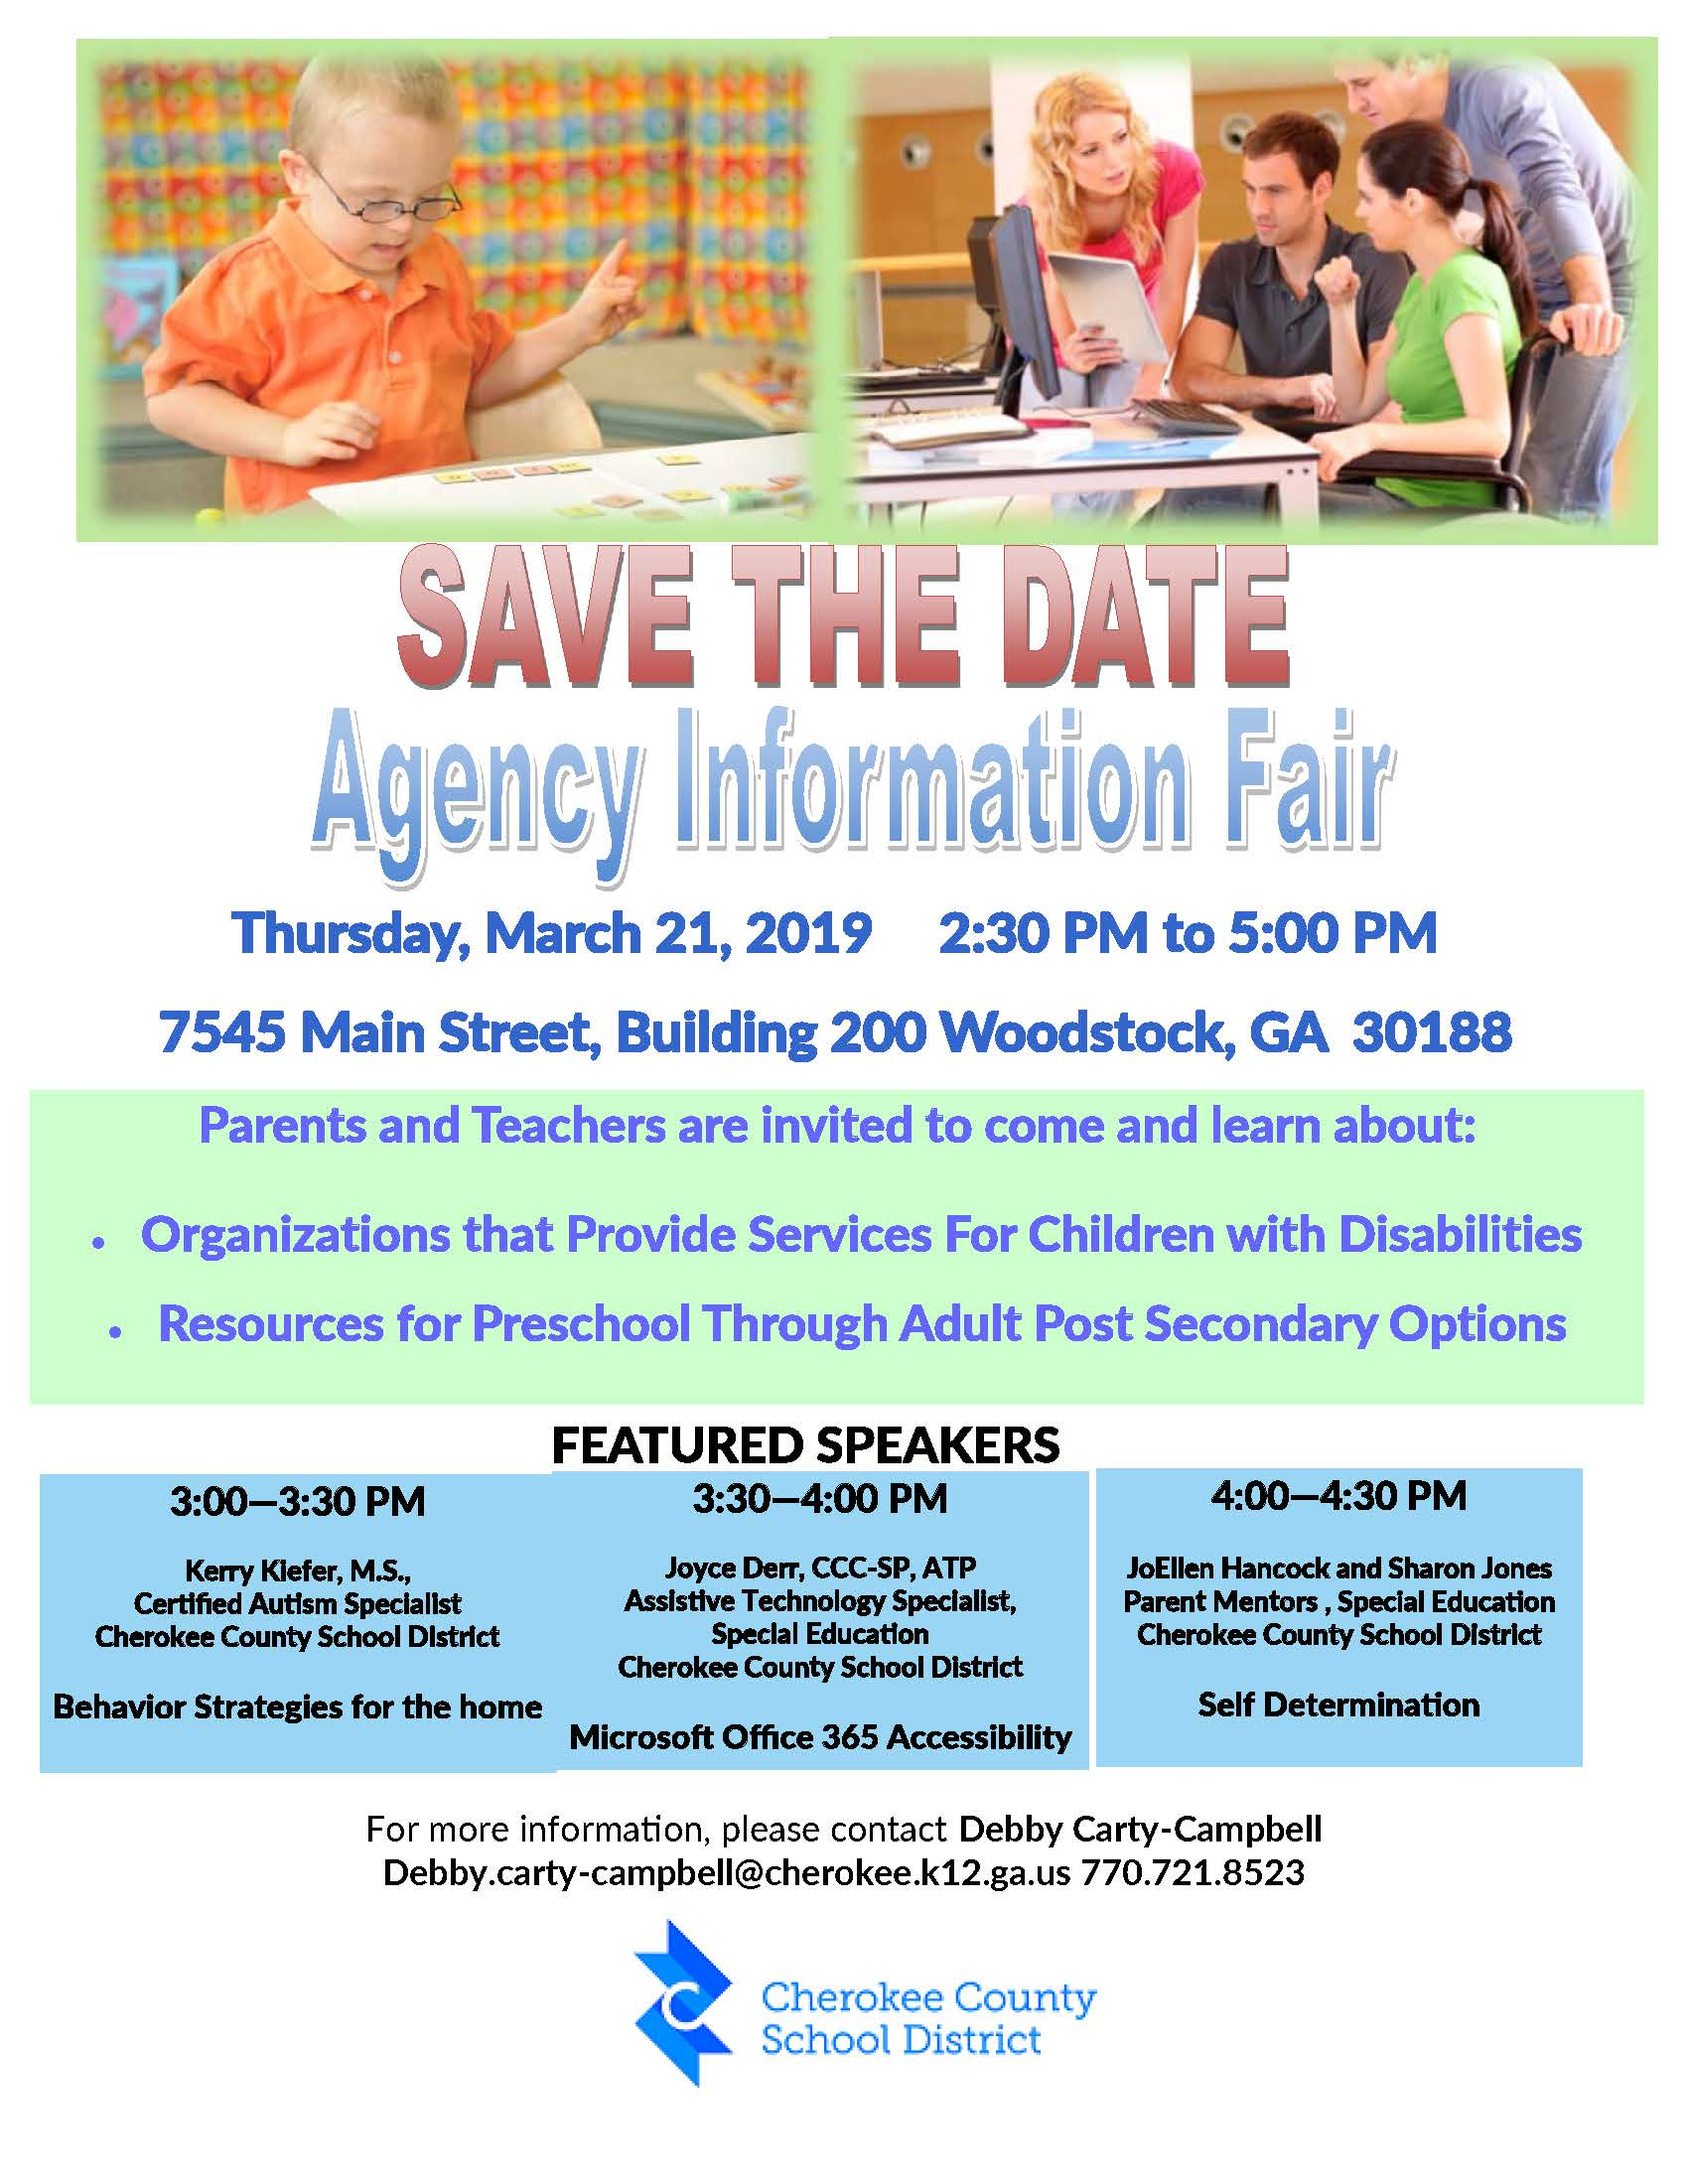 Agency Information Fair 2019 Flier image